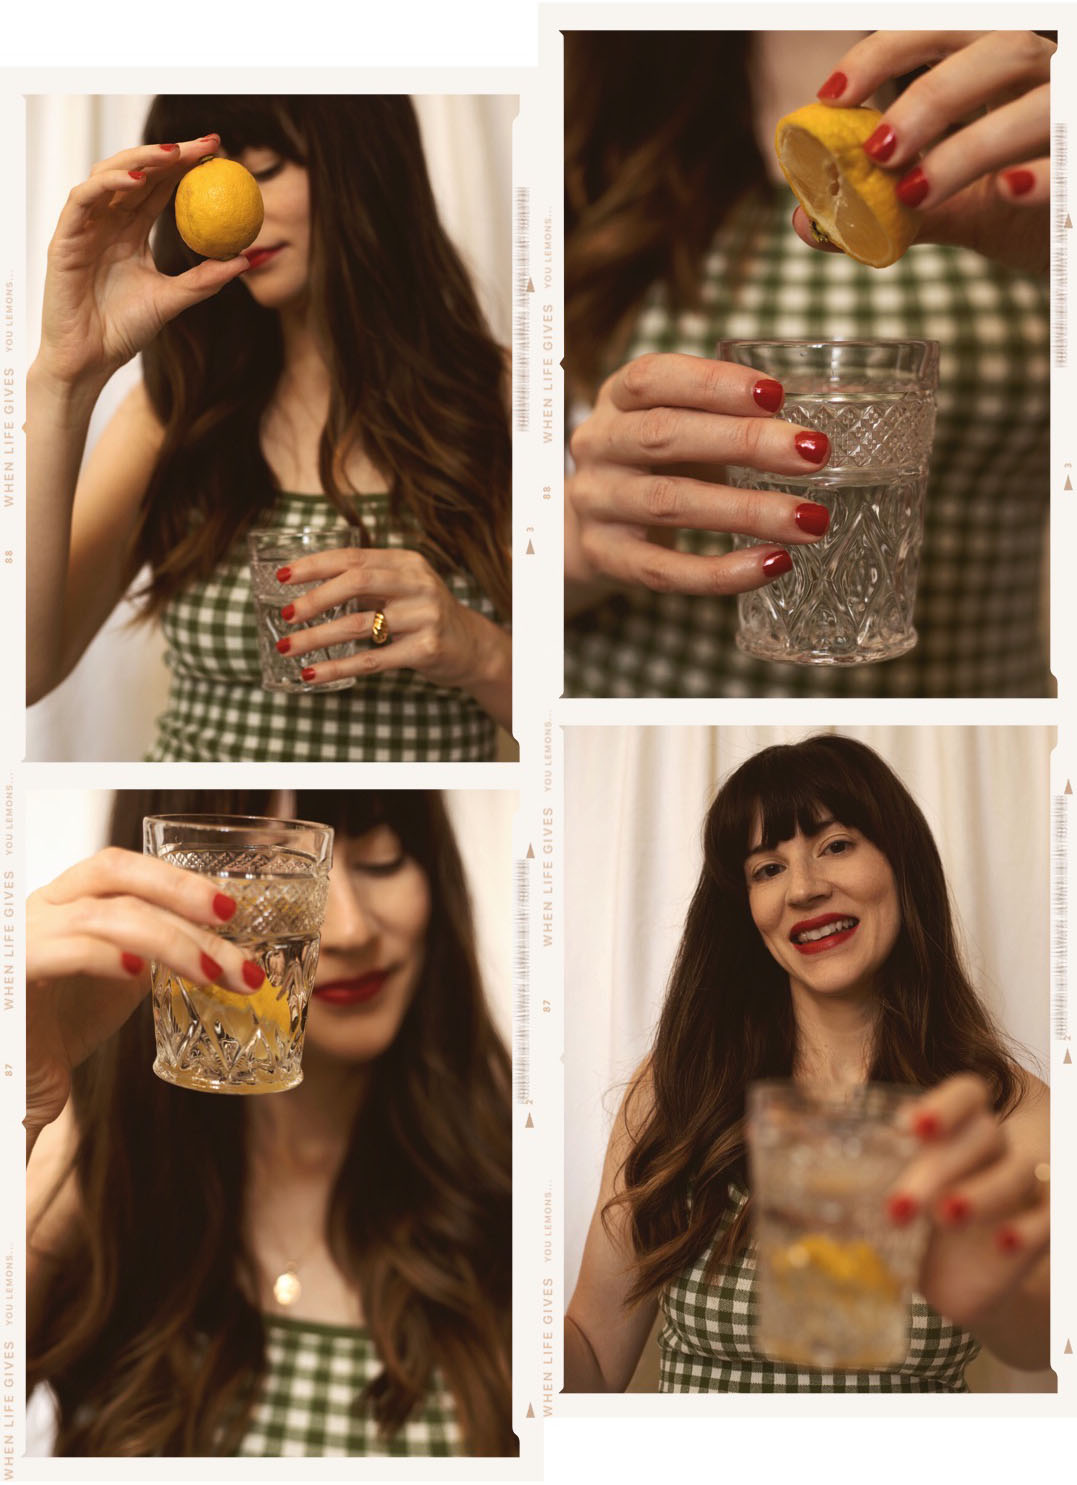 Gingham Dress, Lemon Water Photoshoot